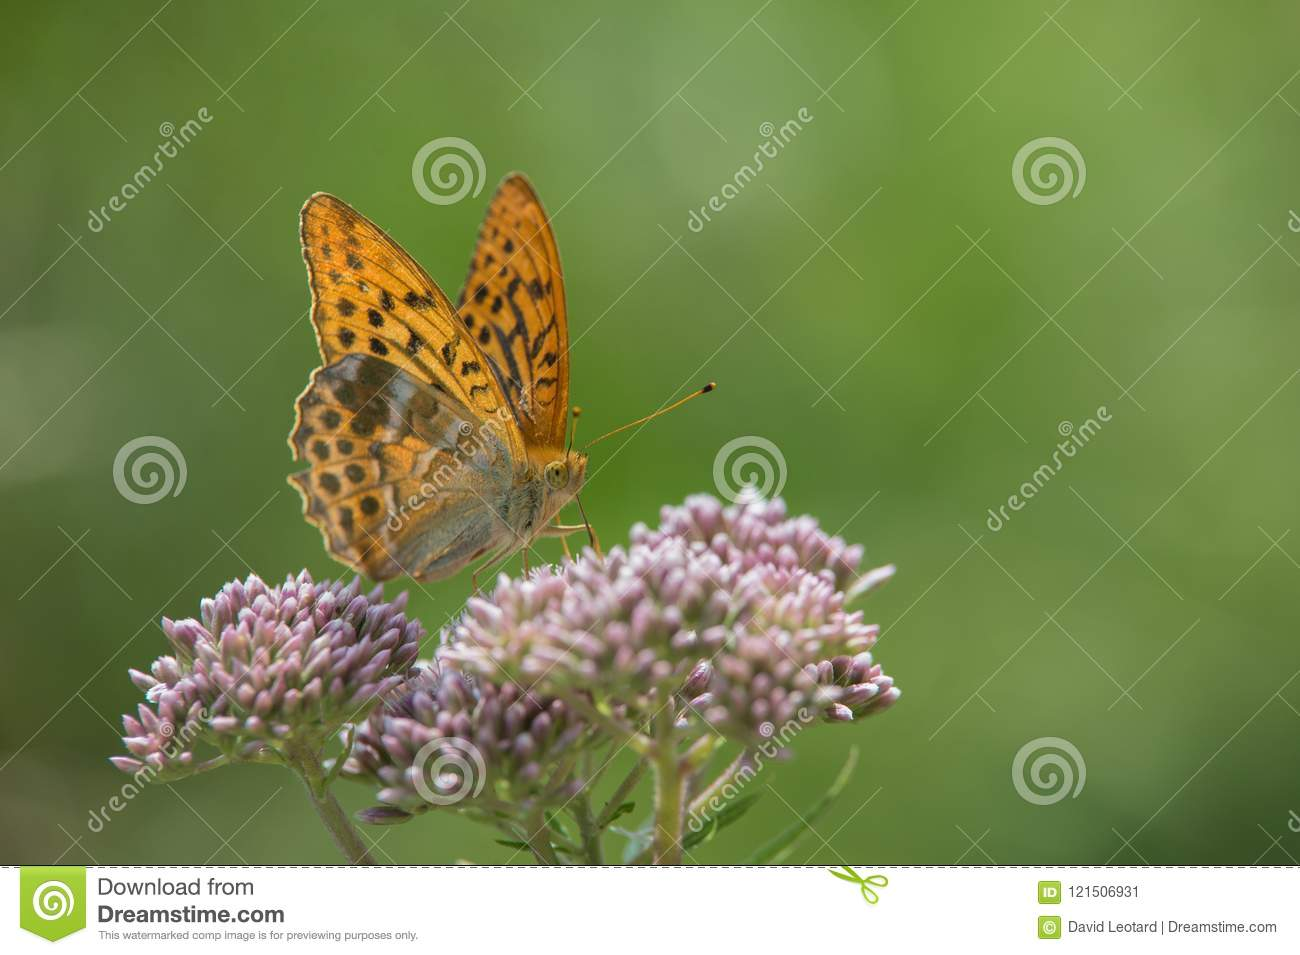 Insect alone large pearly orange brown butterfly posed on a white flower close up